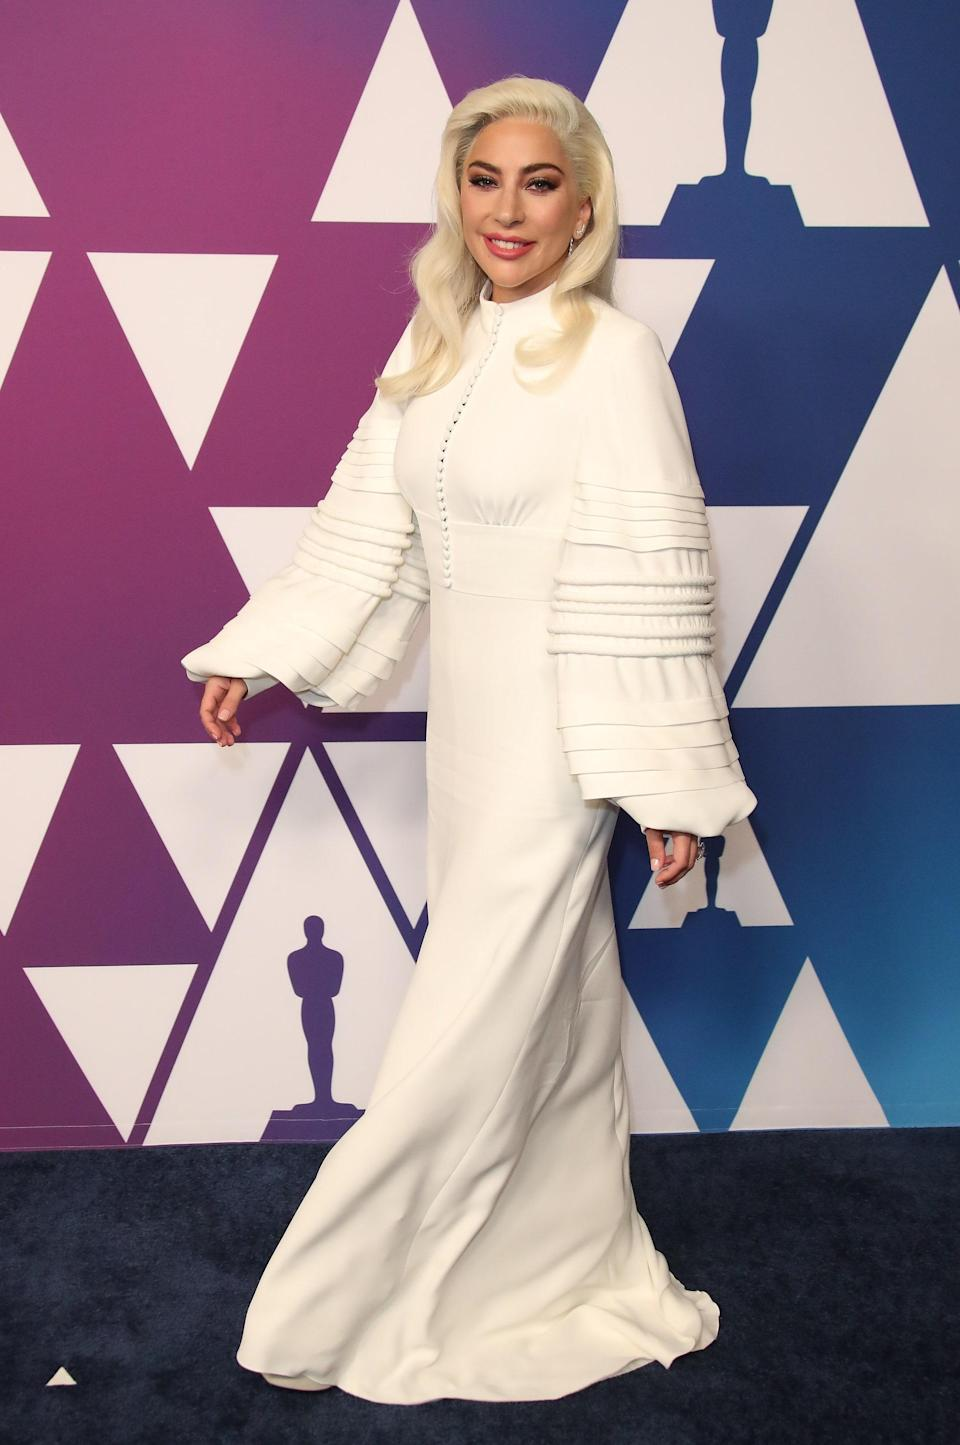 In this gorgeous white gown with intricate details, Gaga is the walking definition of our matriarch.